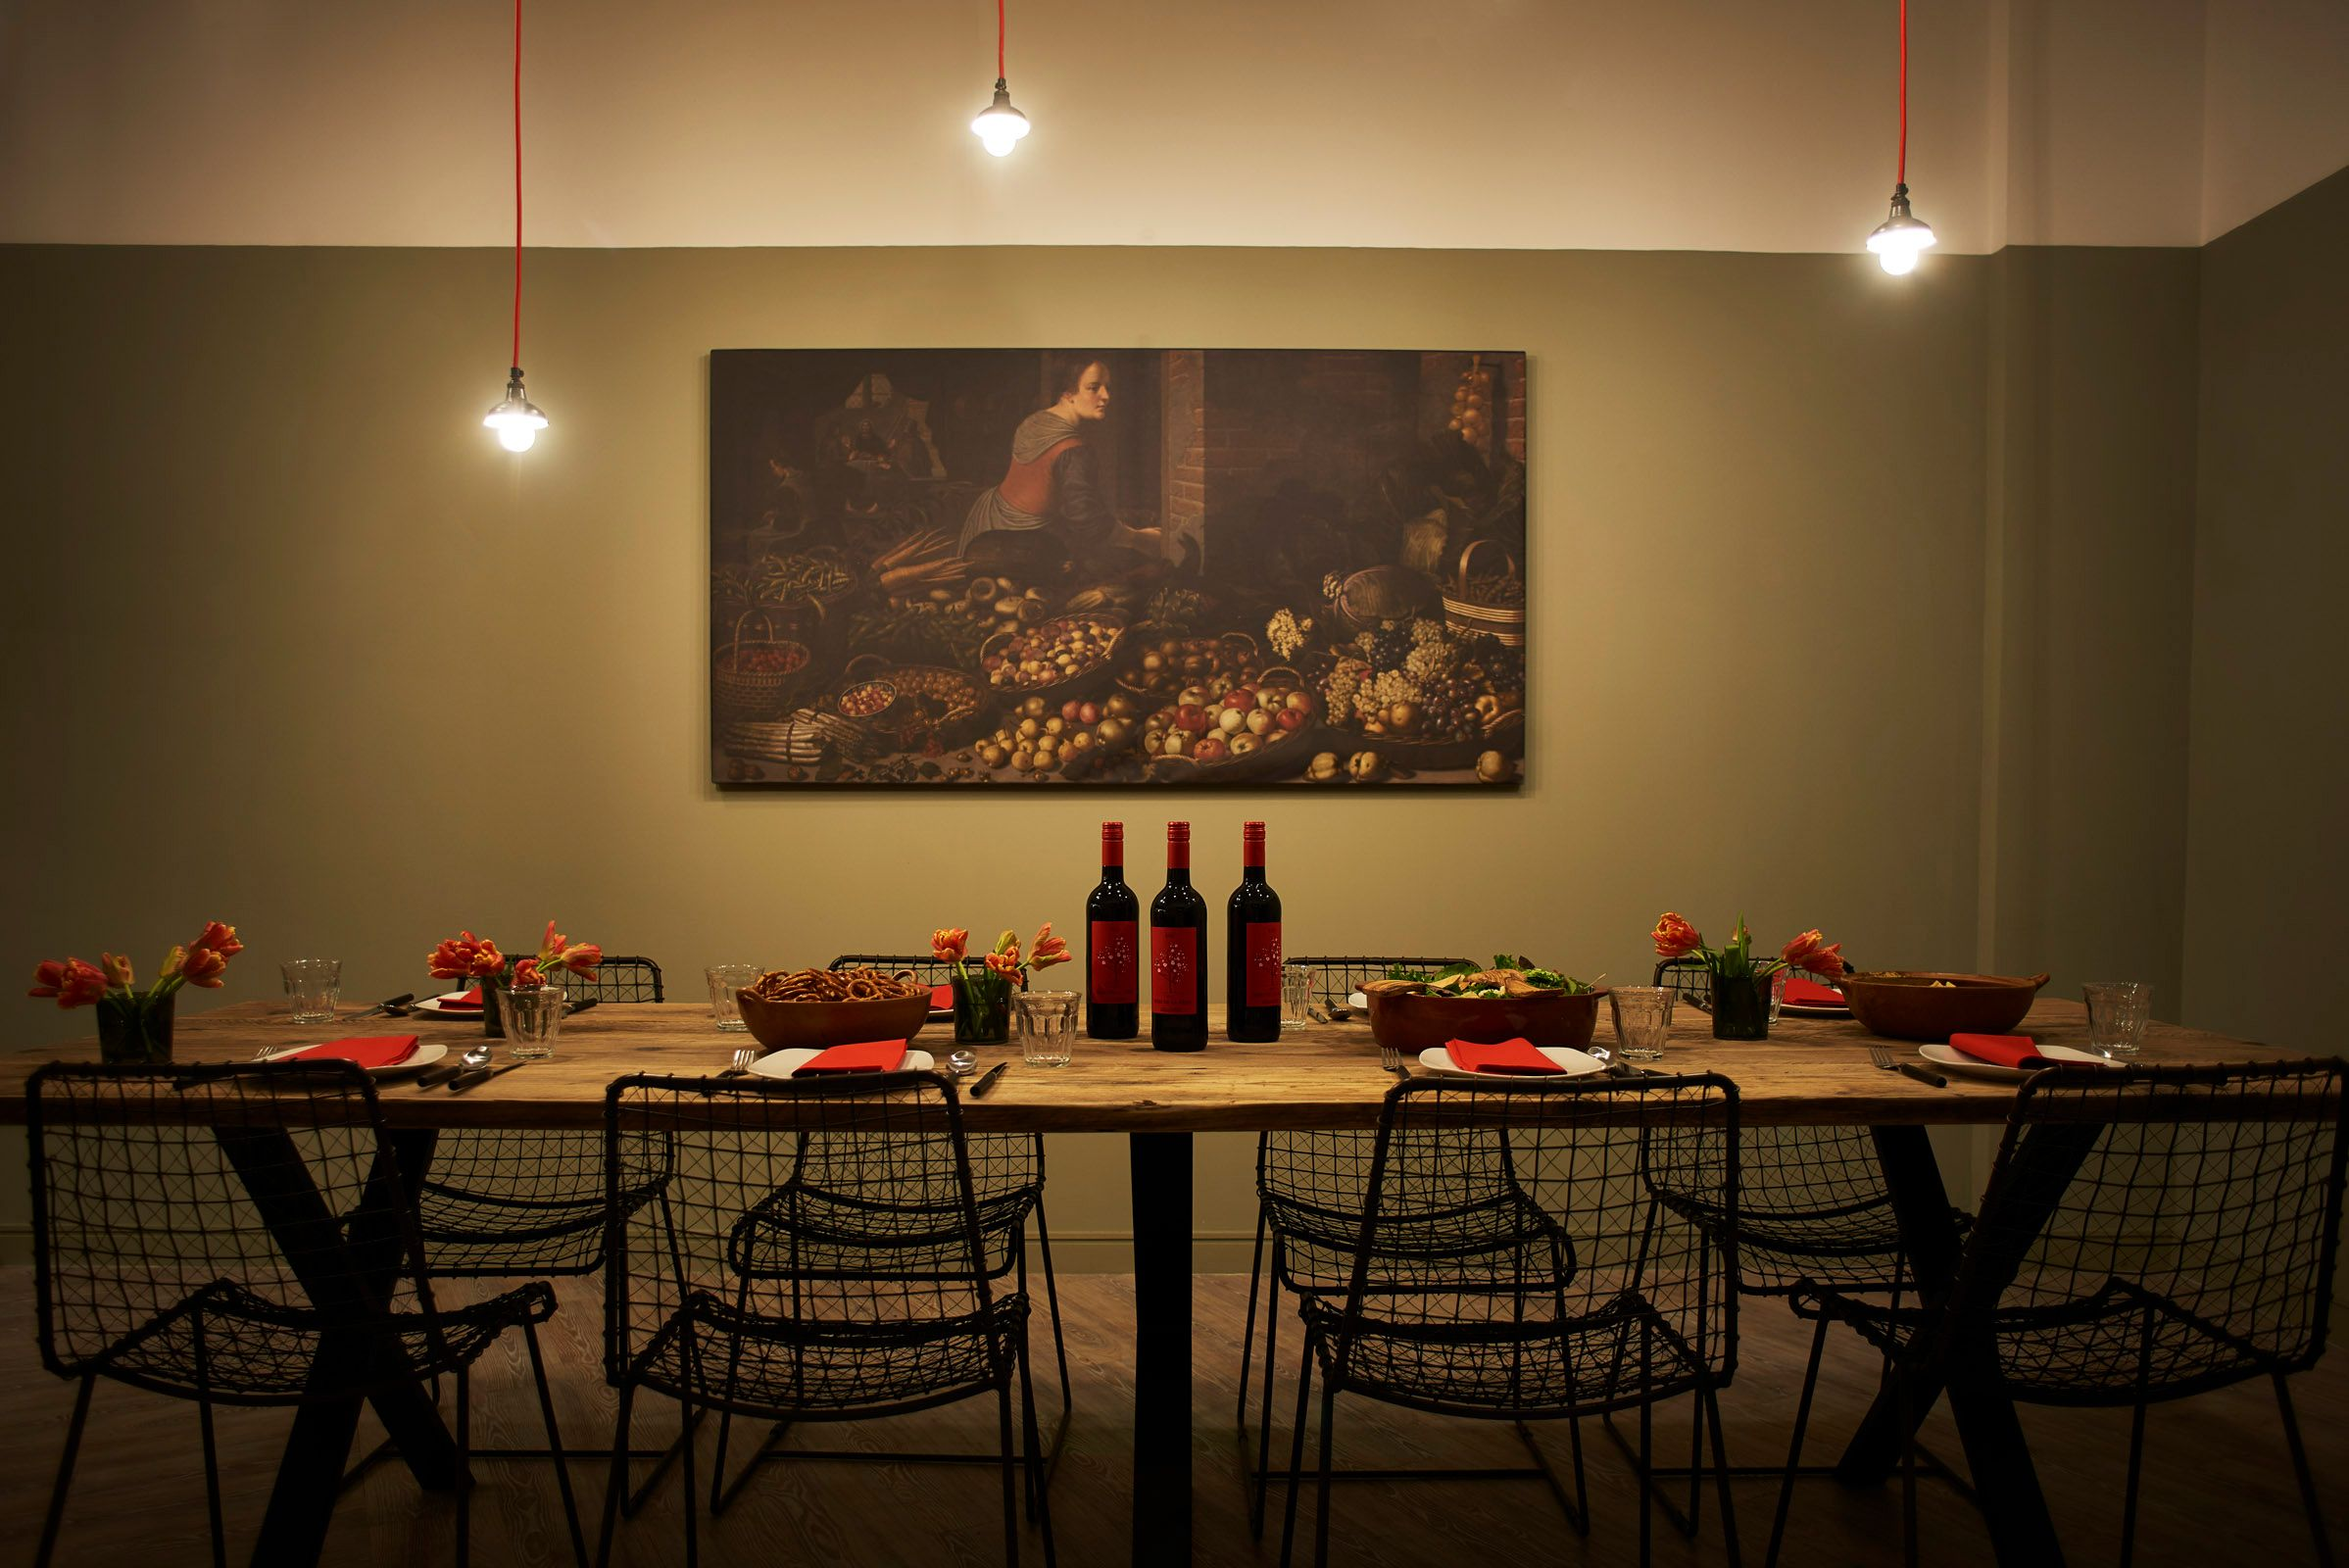 Image may contain: Indoors, Interior Design, Dining Table, Table, Wood, Wine, Bottle, Lighting, Restaurant, Alcohol, Drink, Beverage, Chair, Furniture